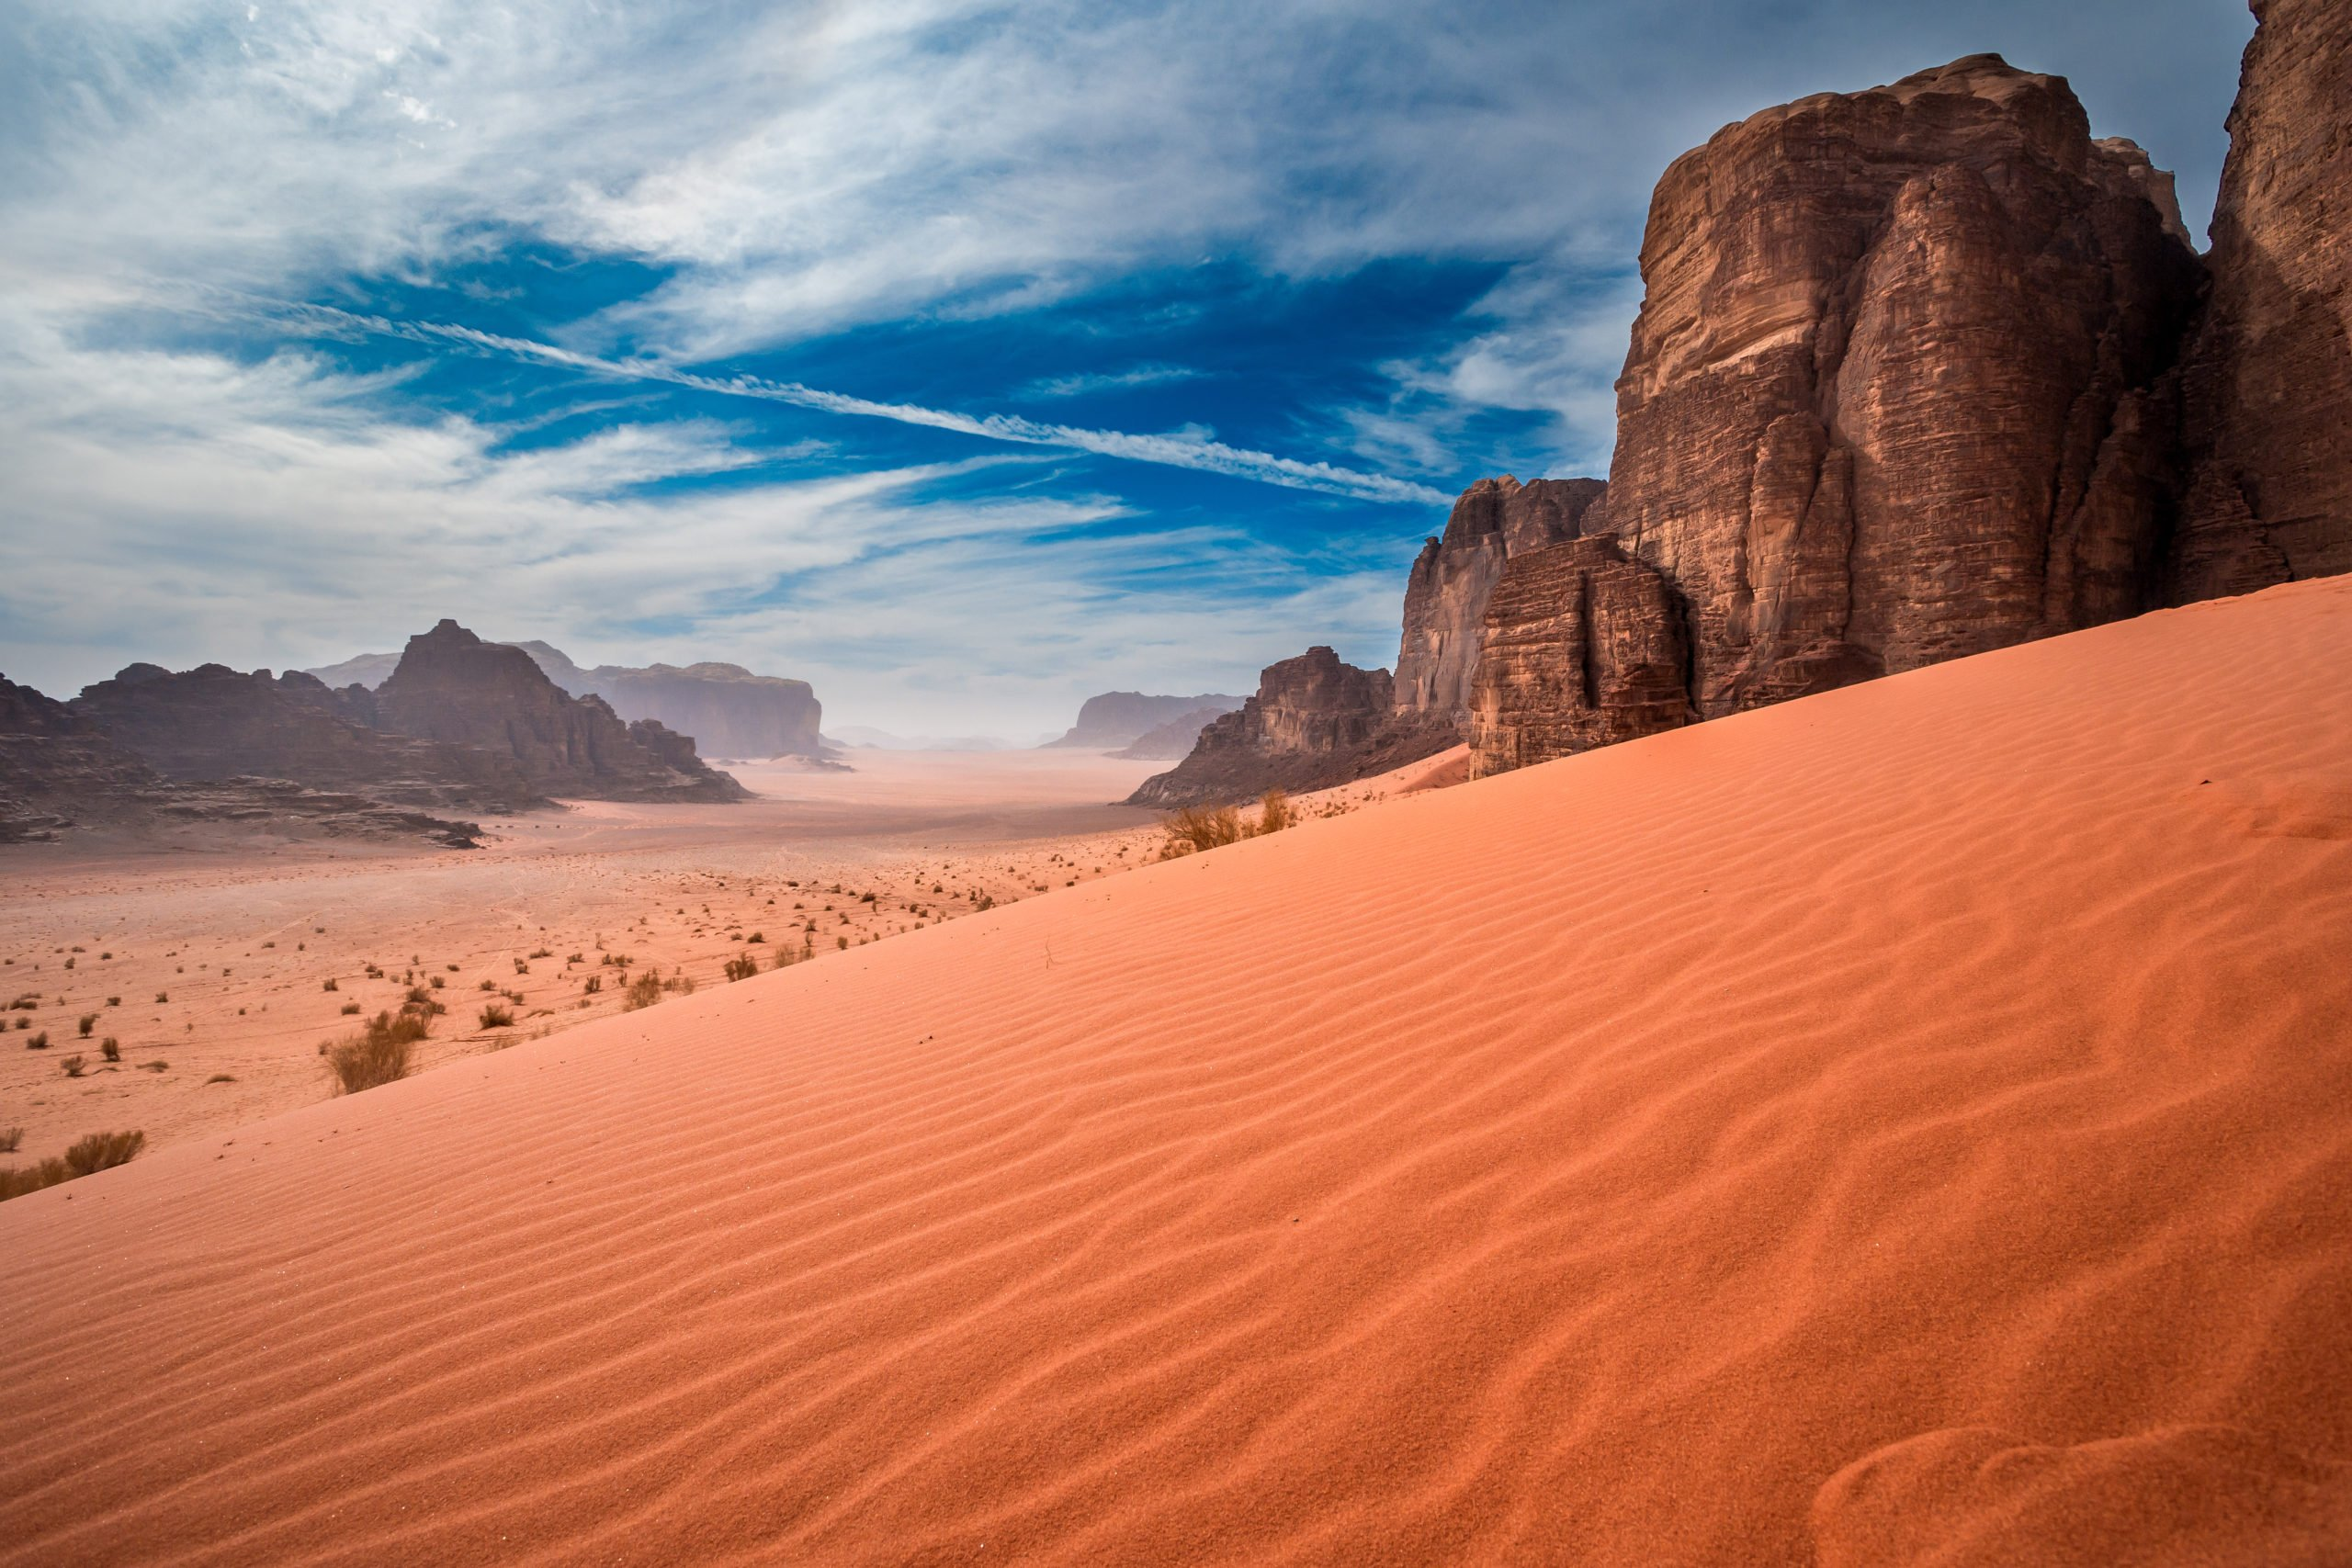 Enjoy A Jeep Tour In Wadi Rum On The Highlights Of Jordan 3 Day Tour From Amman